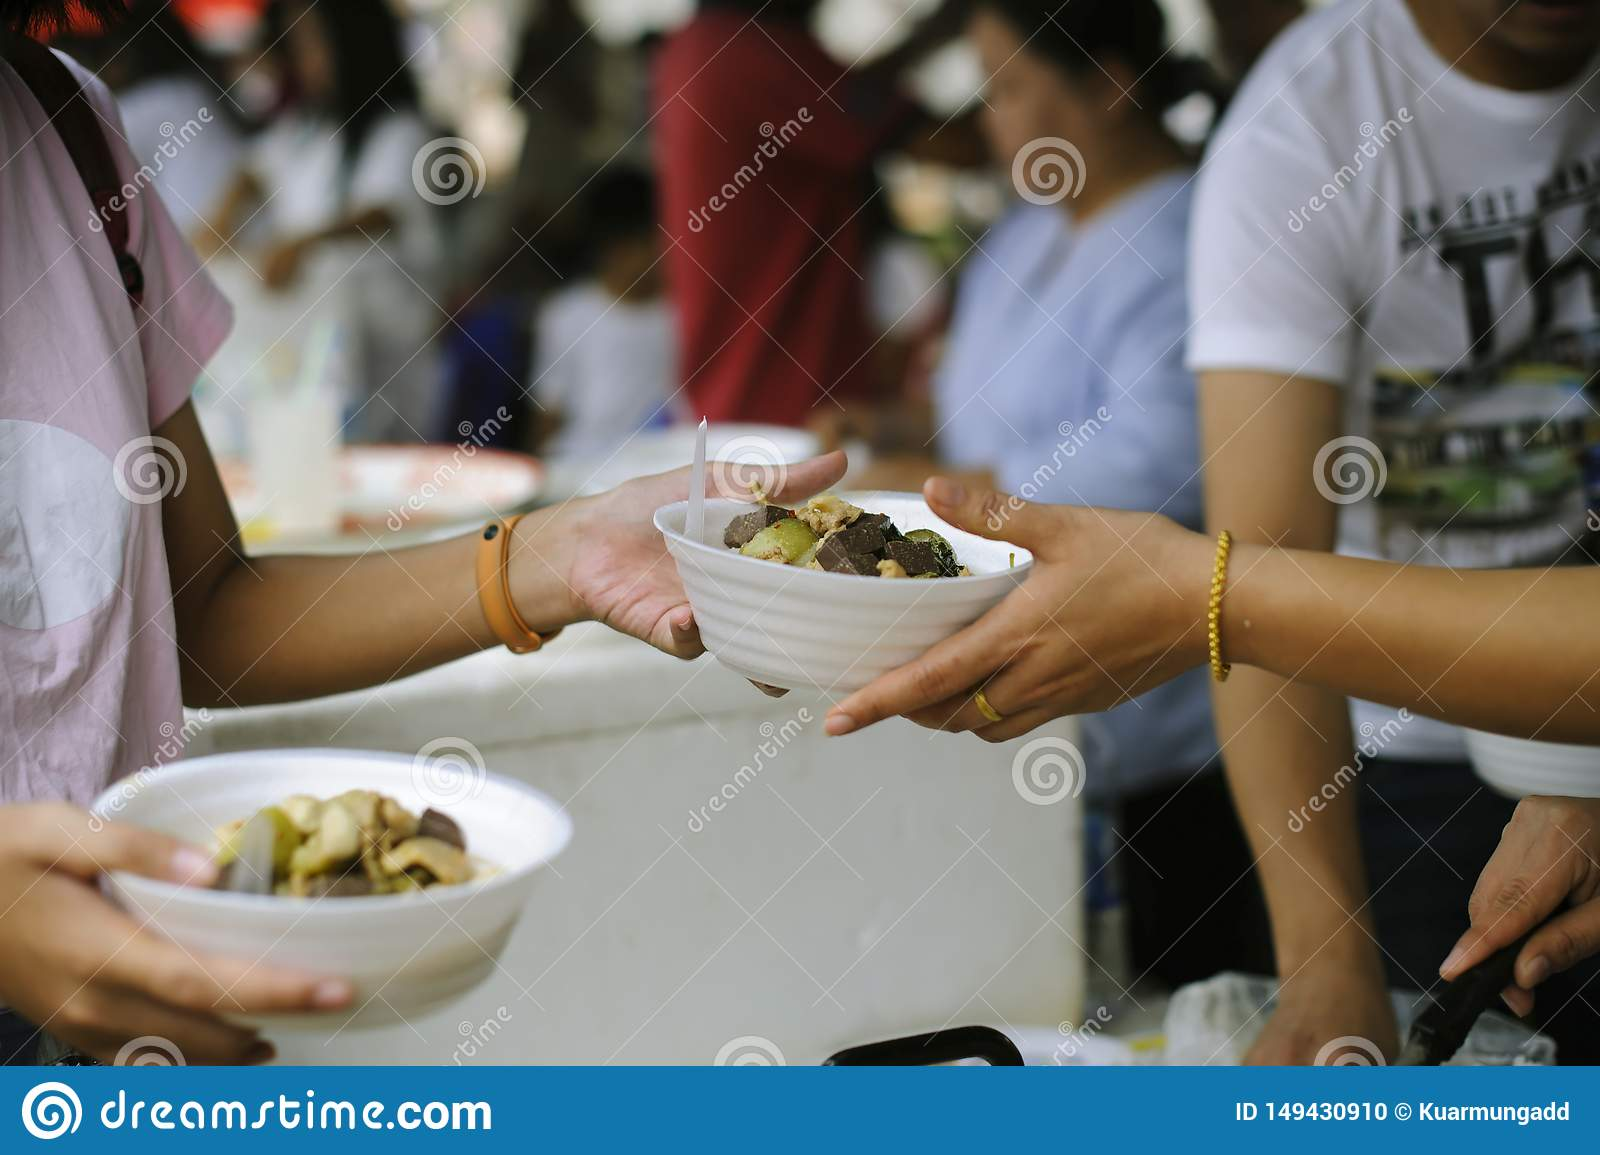 Social Problems of Poverty Helped by Feeding : Volunteer to Feed the Hungry in Society: The Concept of Donating Food to the Poor